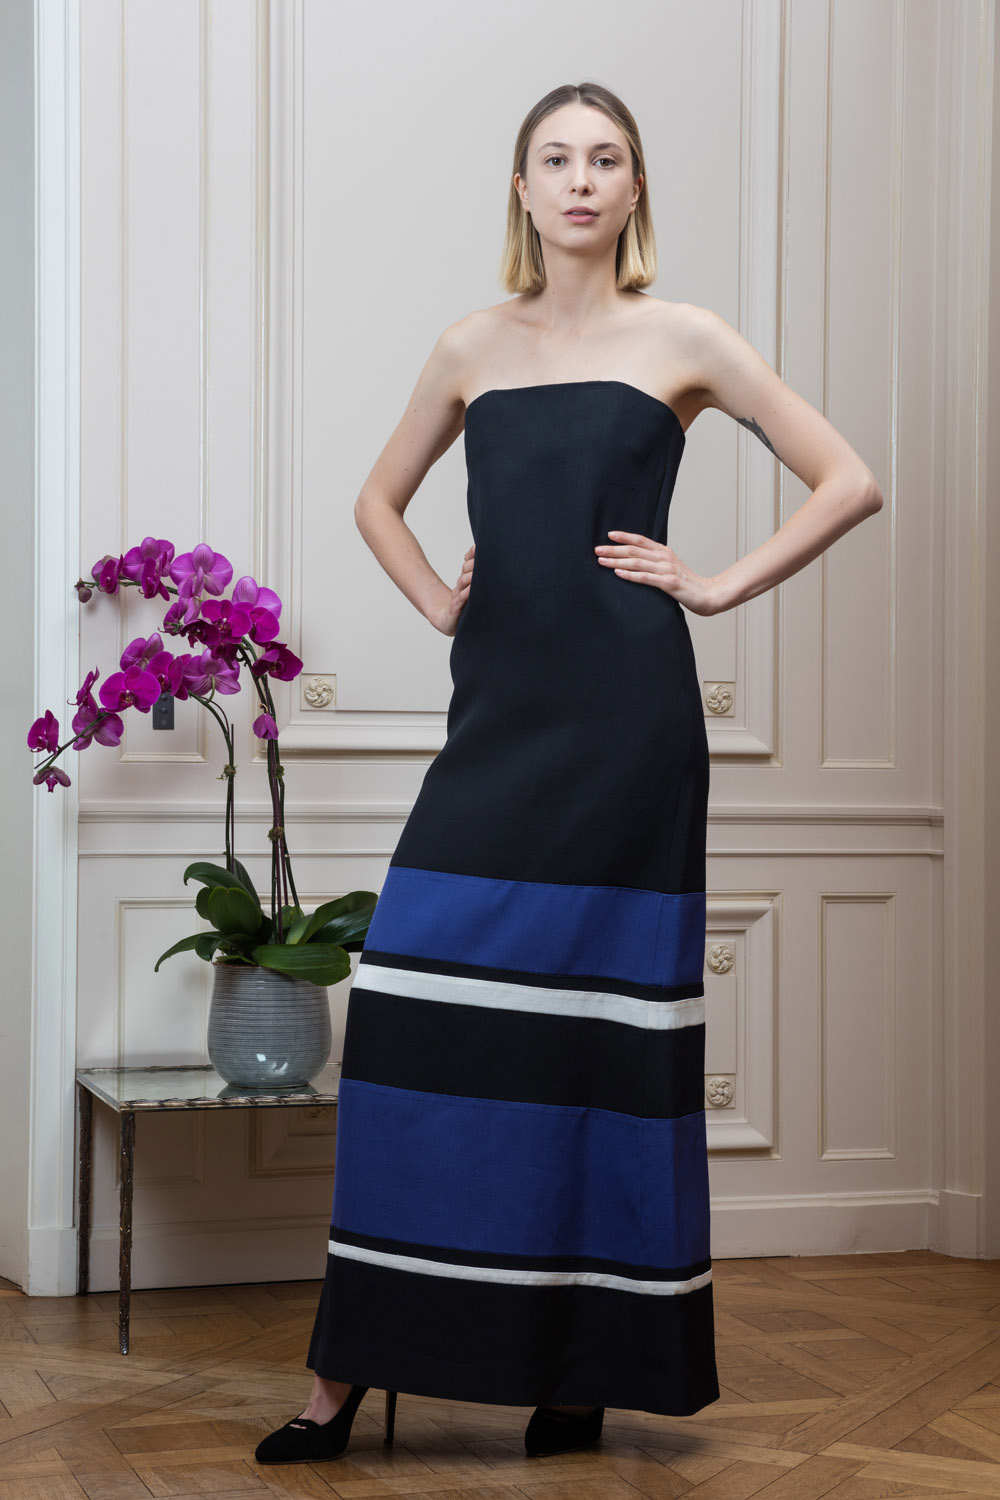 Loose silhouette shoulderless maxi dress